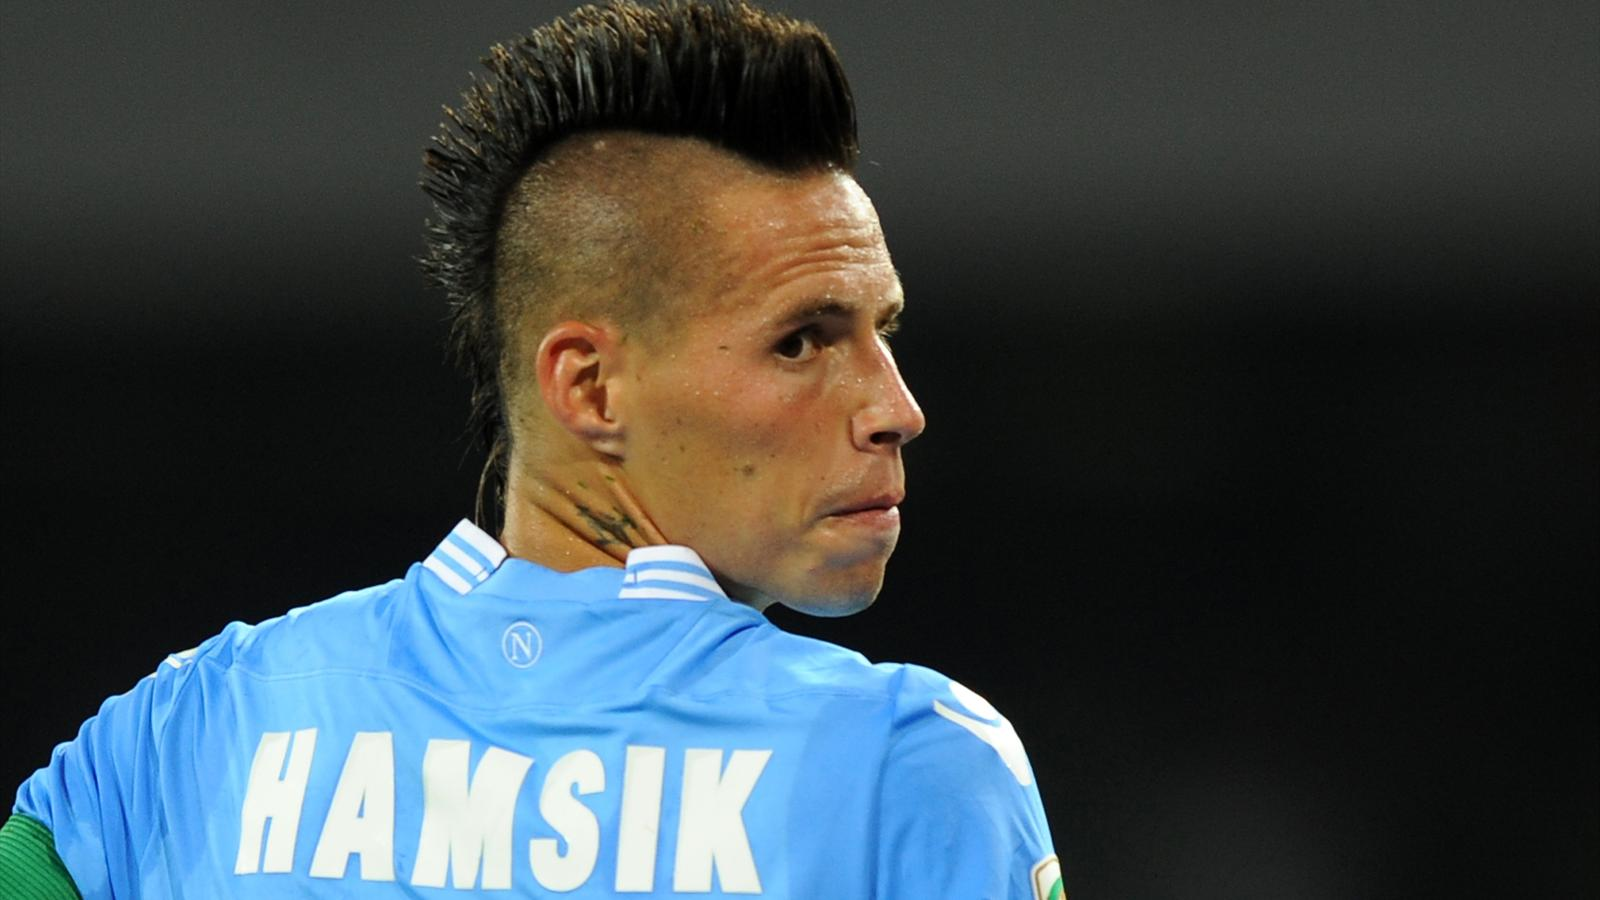 Marek Hamsik of Napoli (Getty)